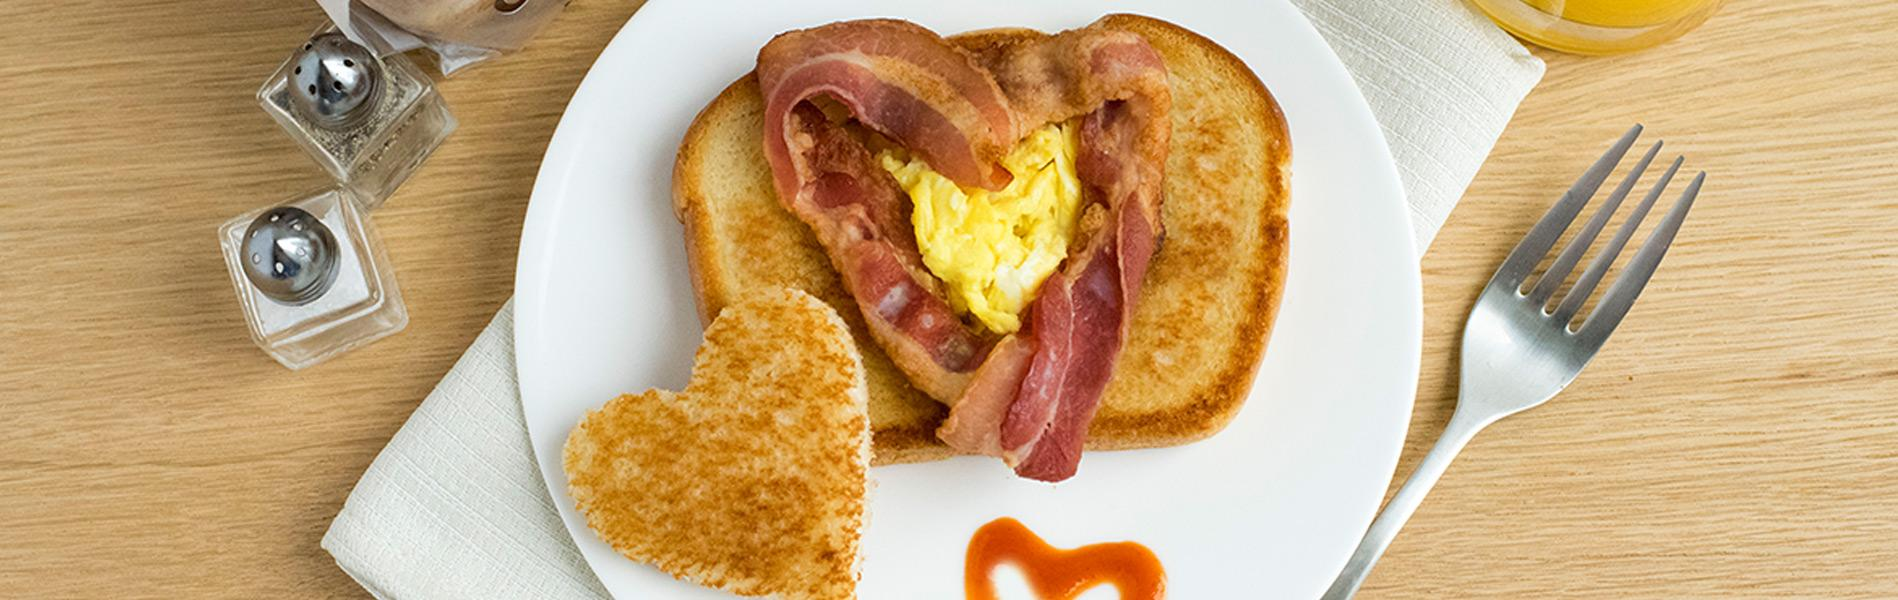 Bacon and scrambled eggs on toast